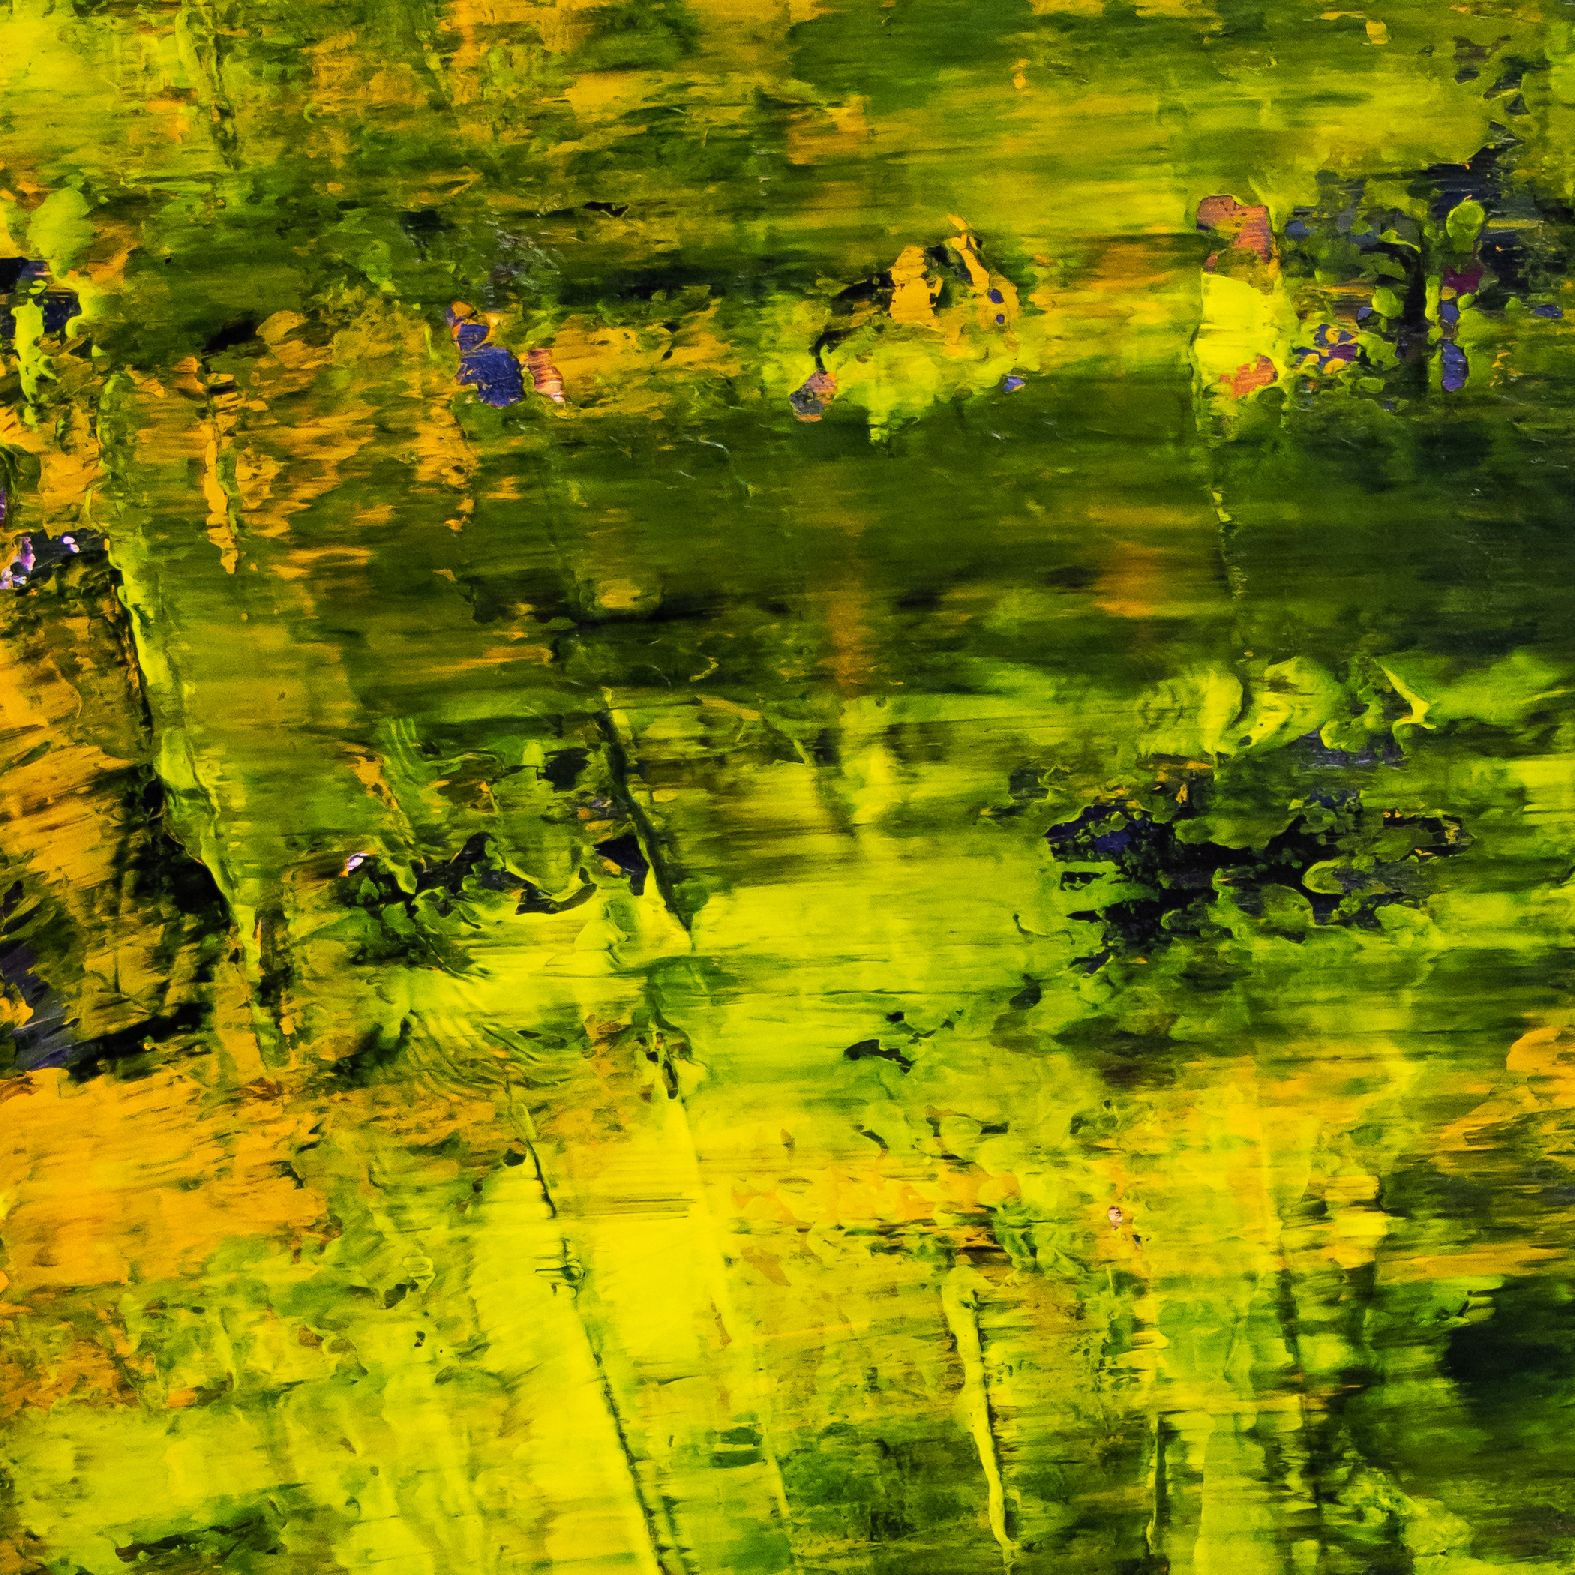 Detail - Sunny Forest Canopy (2020) by Nestor Toro